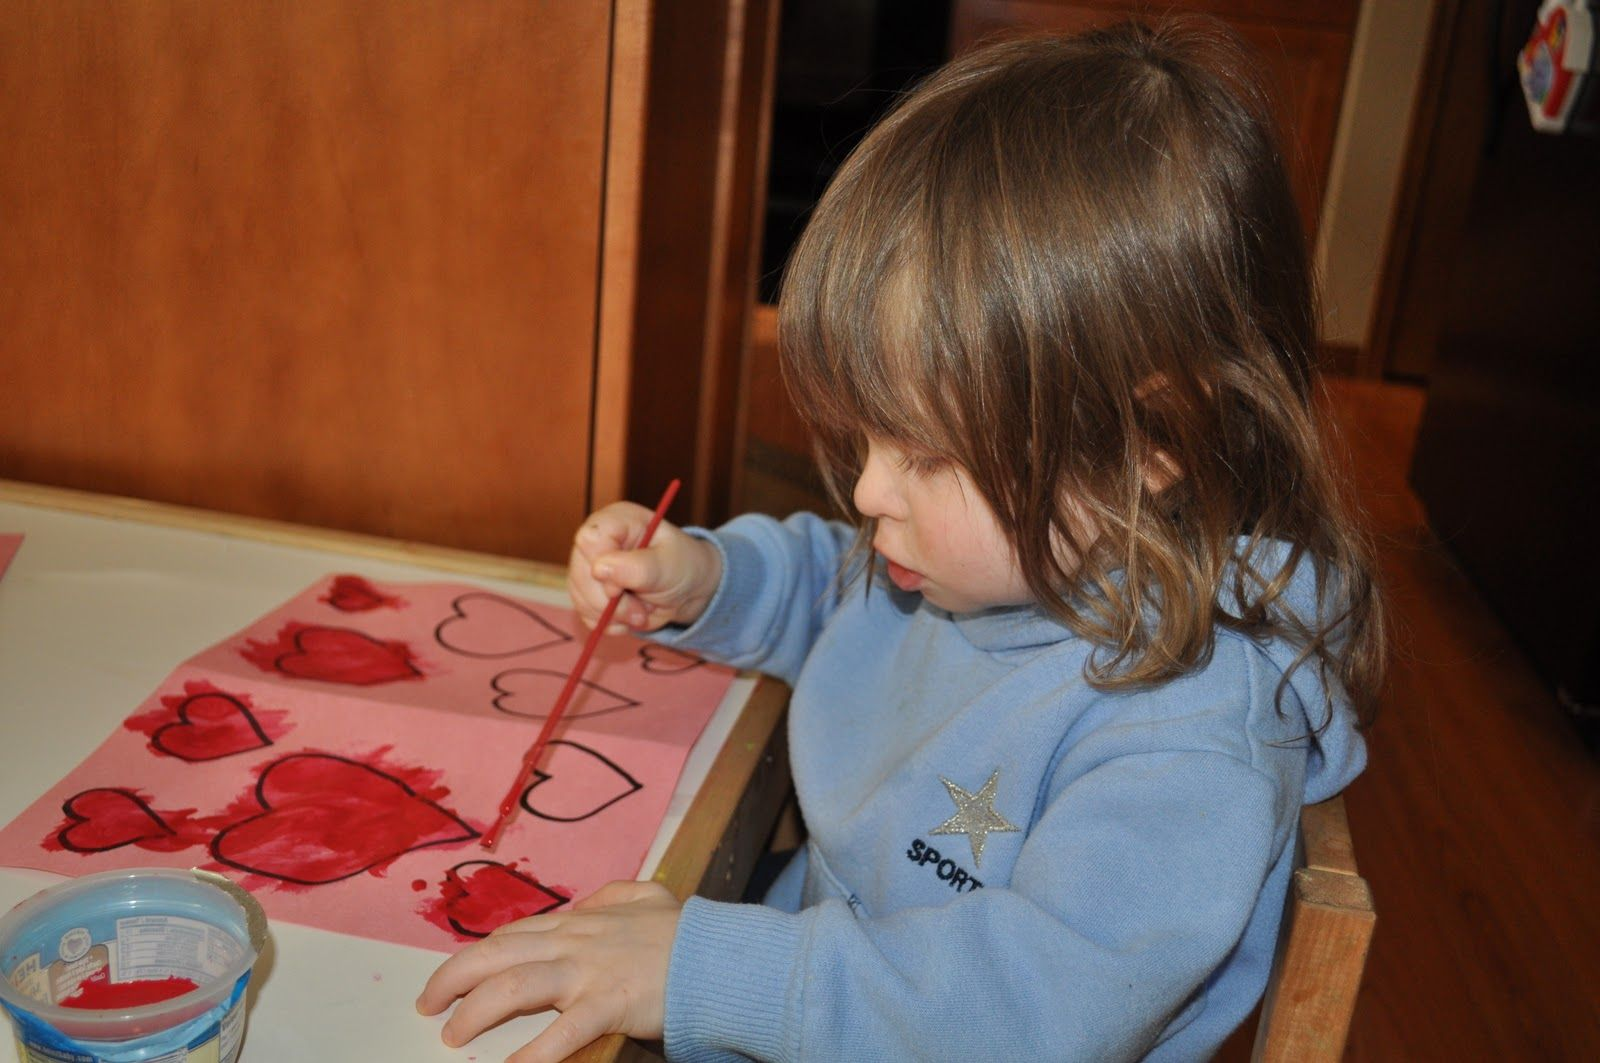 Dyi Toddler Valentine Day Cards